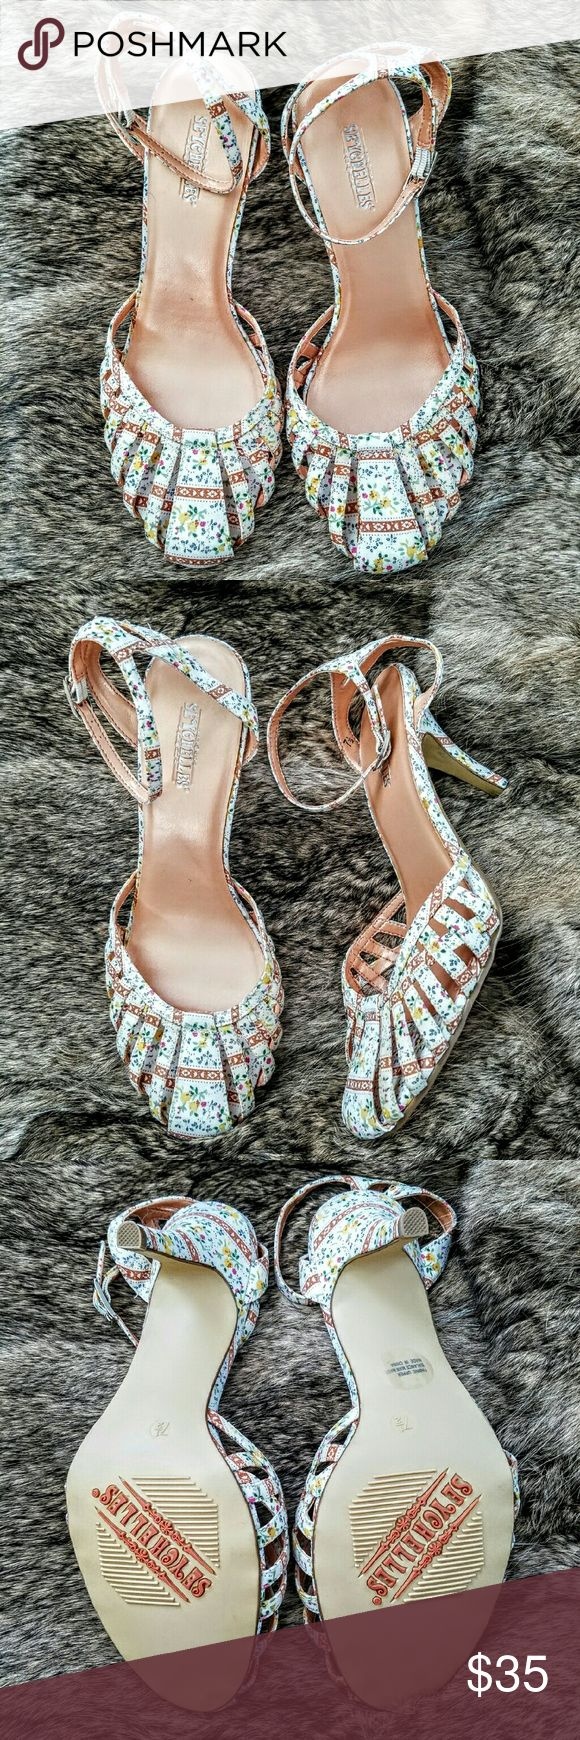 Seychelles High Heel Shoes - NWOT These high heels from Seychelles have a beautiful floral fabric upper! These are new without tags and have only been worn to be tried on. Excellent condition! Size 7.5. The heel measures approximately 3 inches. Seychelles Shoes Heels